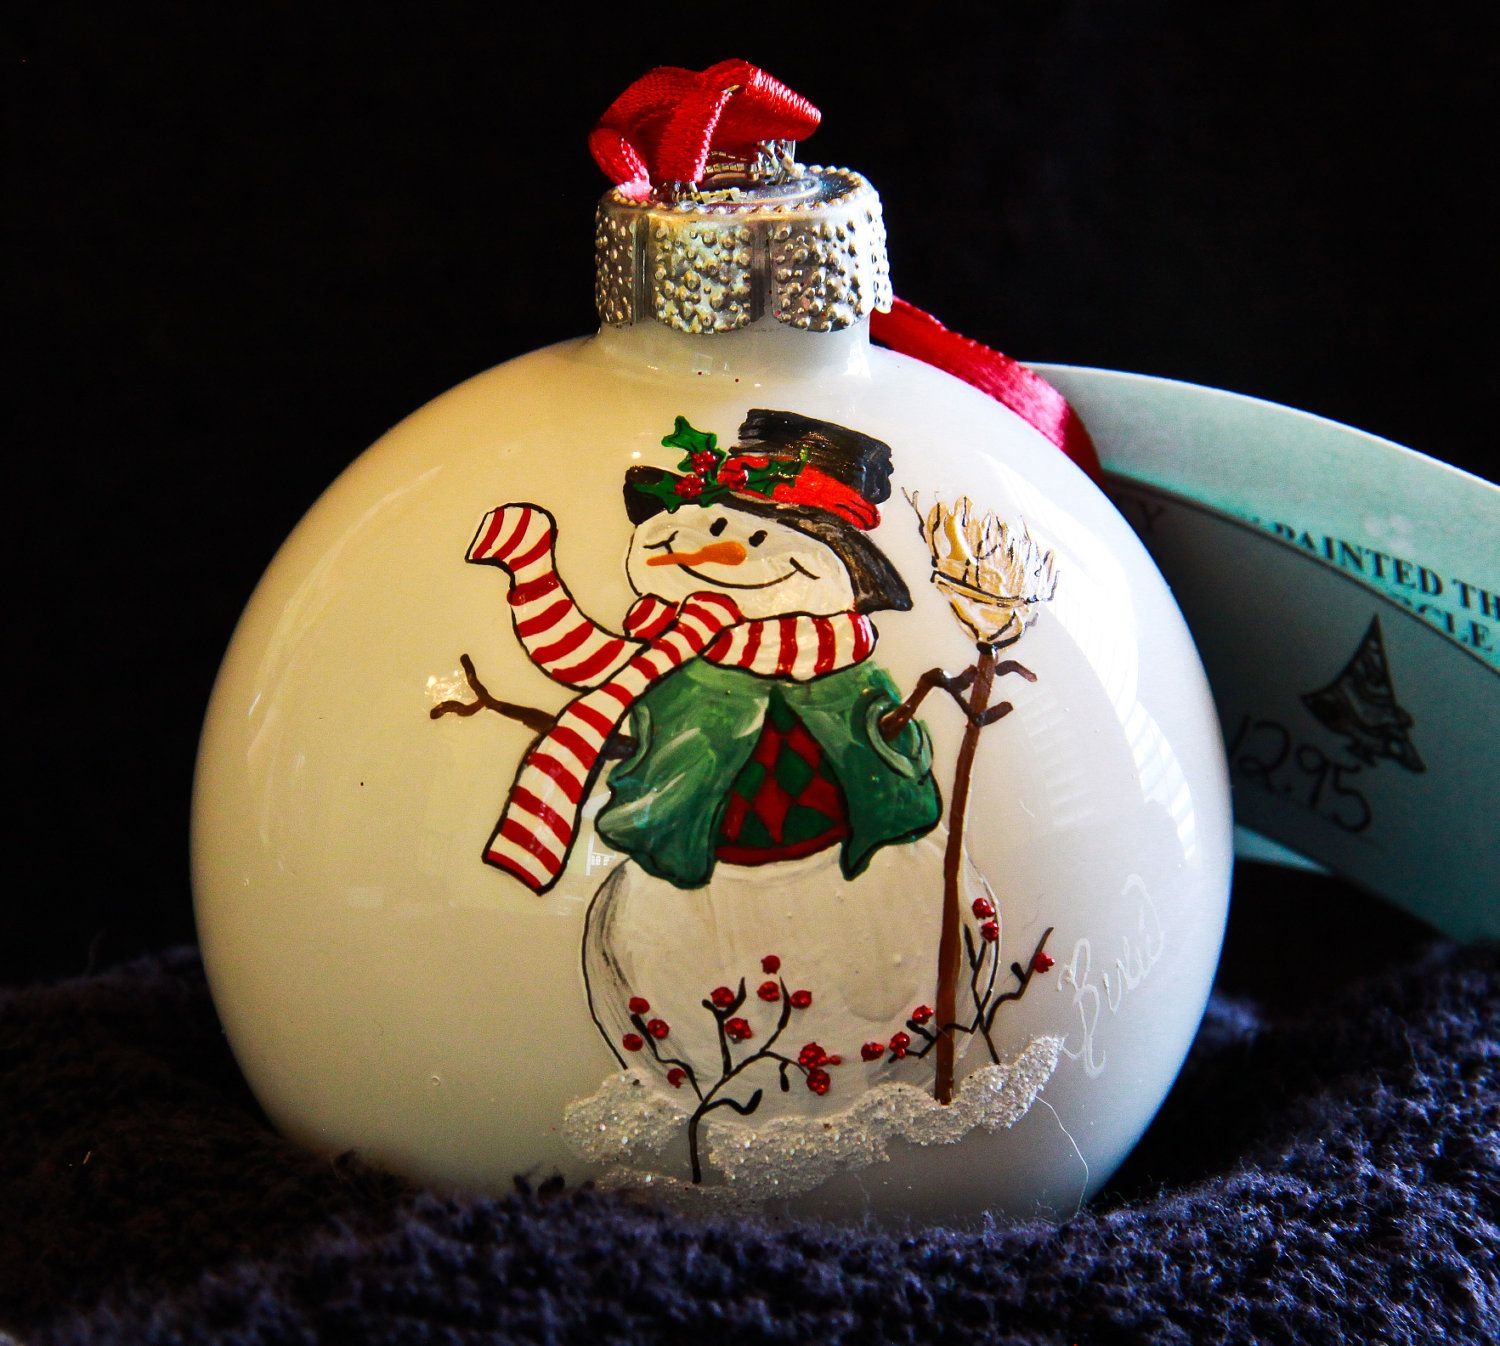 Hand Painted Ornament Painted Christmas Ornaments Painted Ornaments Christmas Ornaments Homemade